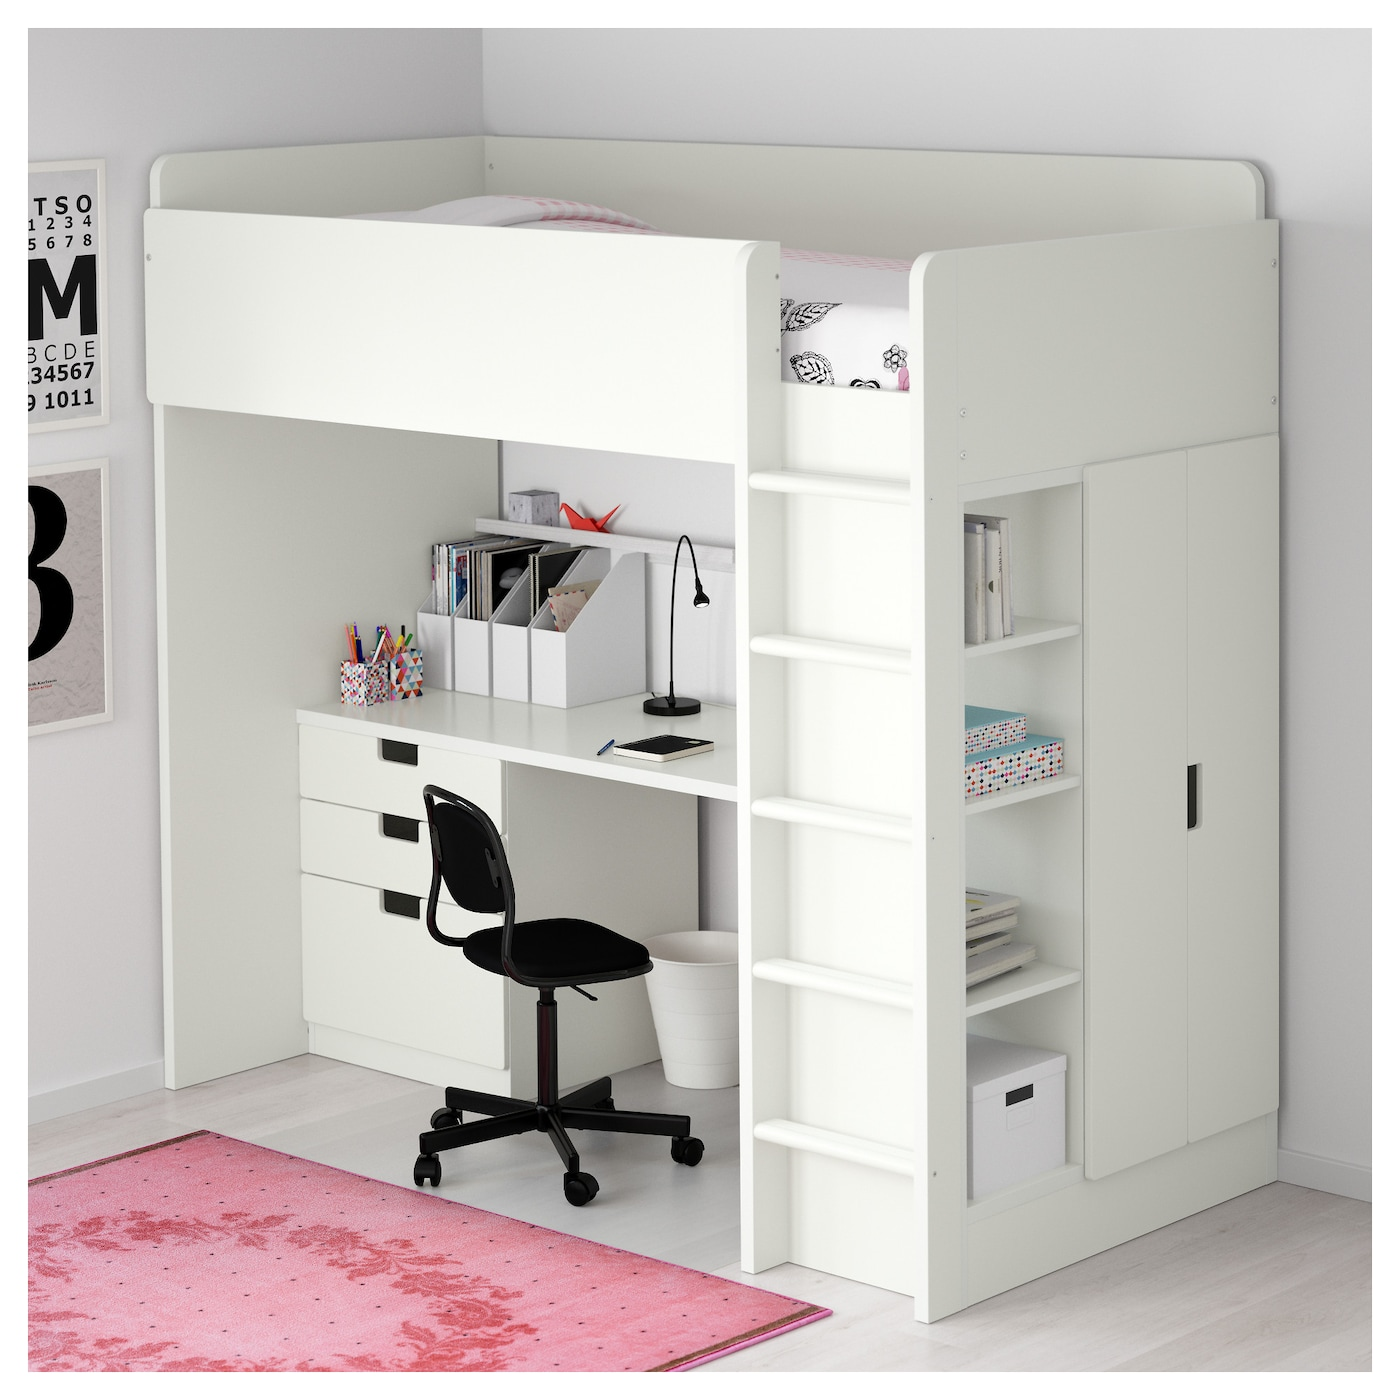 stuva loft bed combo w 3 drawers 2 doors white 207x99x193. Black Bedroom Furniture Sets. Home Design Ideas